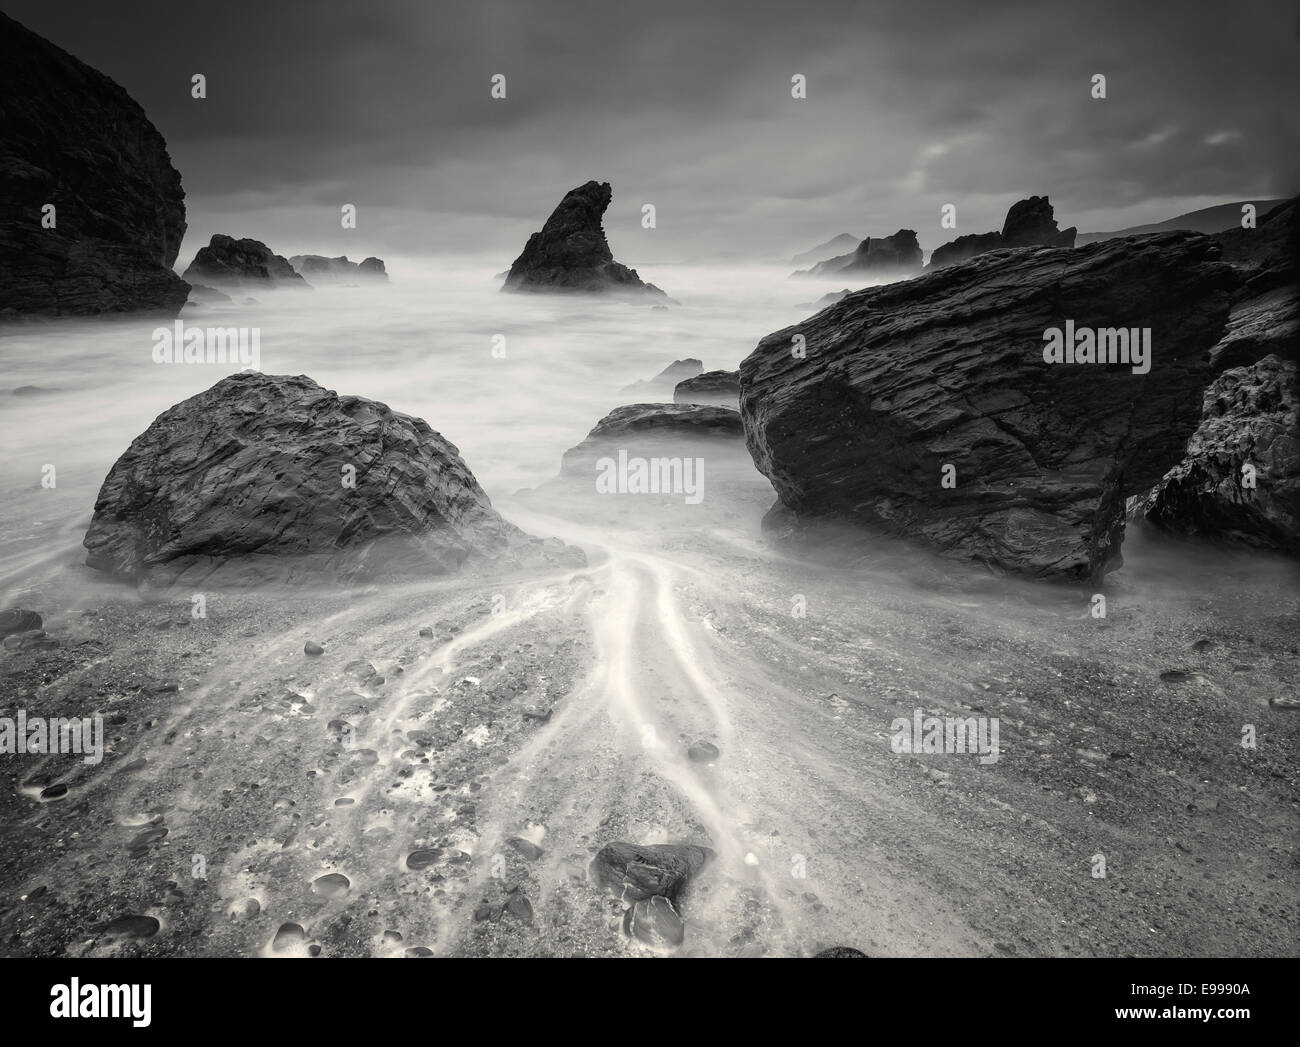 Beach in black and white. This beach is called Fontes beach and is located in Ferrol, Galicia, Spain. - Stock Image